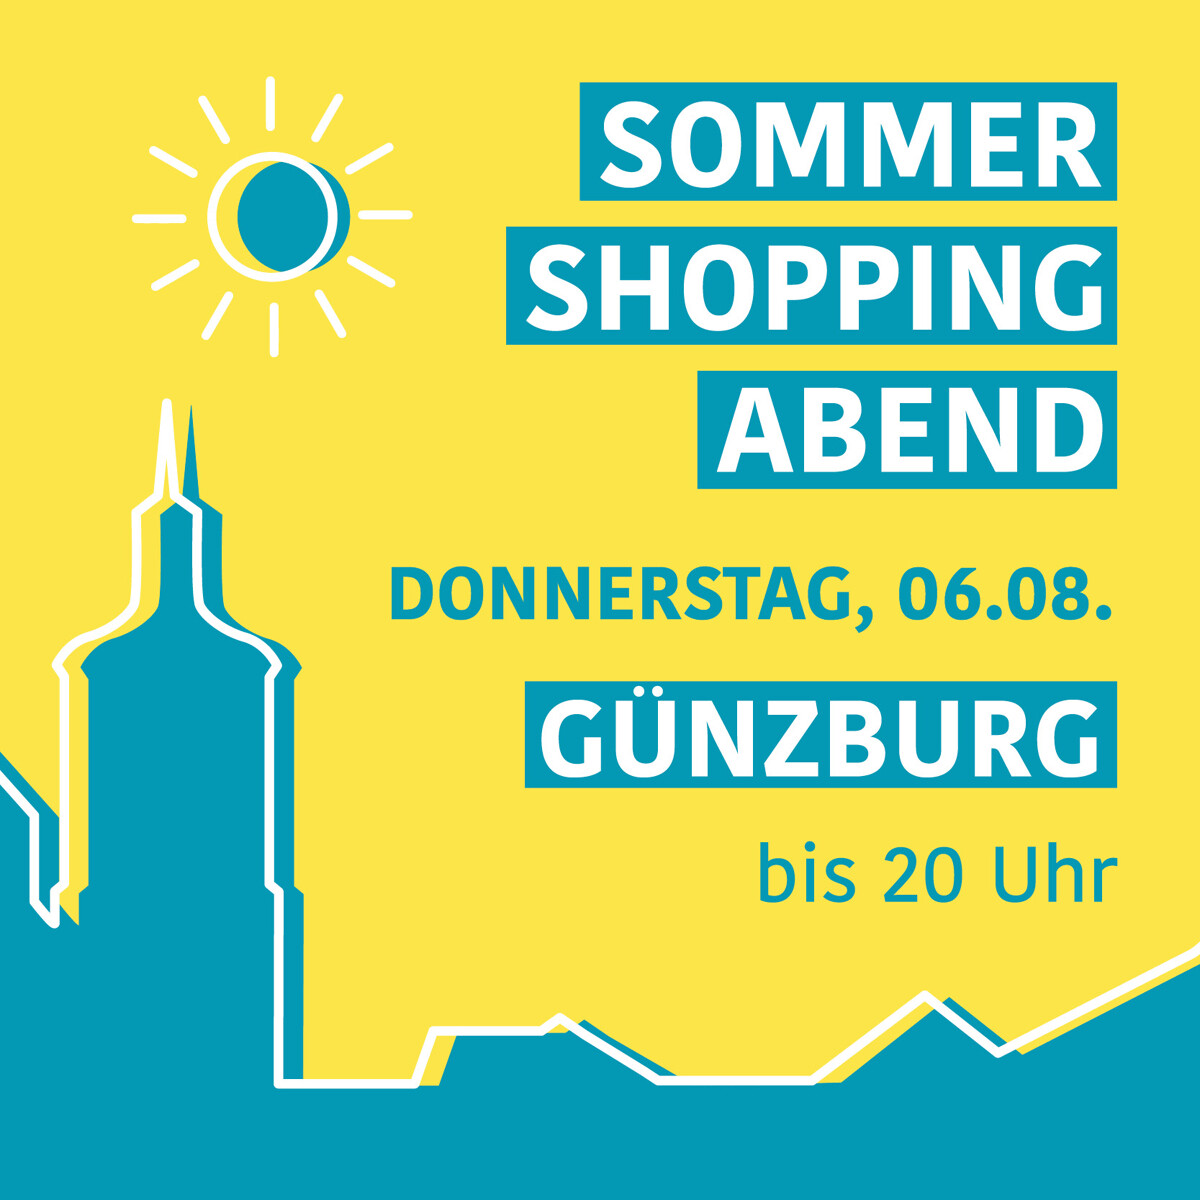 Sommer Shopping Abend